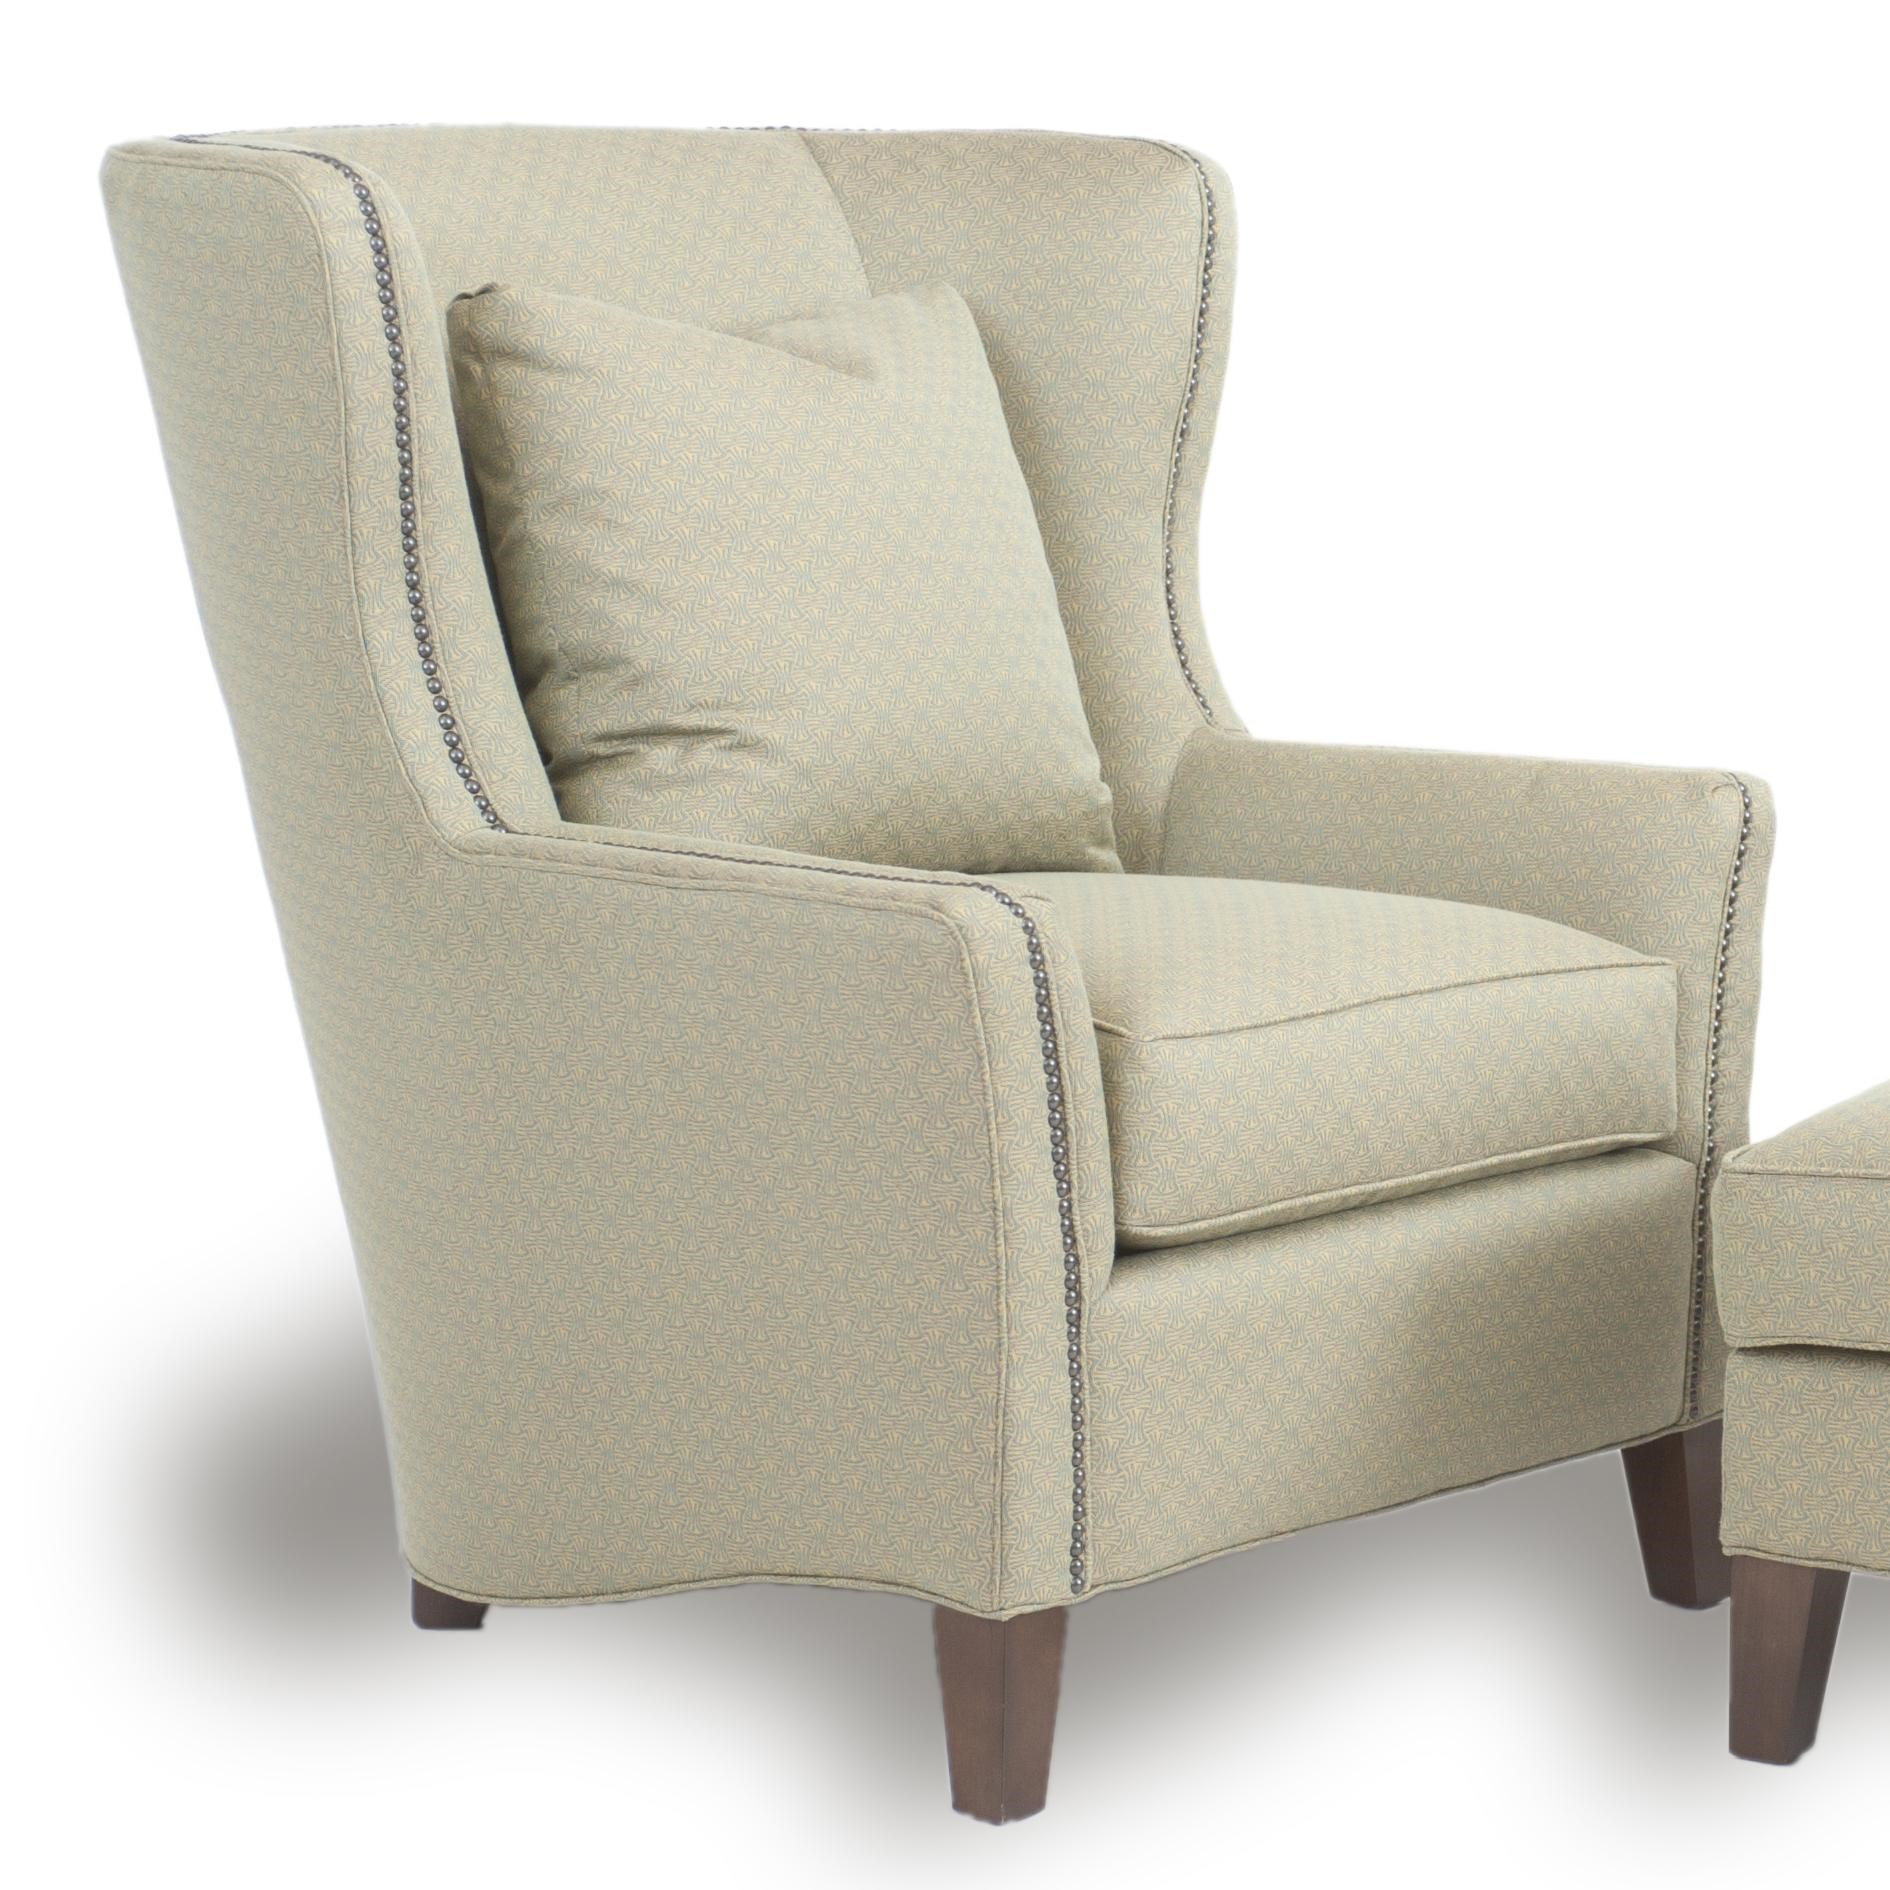 Smith Brothers Accent Chairs And Ottomans Sb Contemporary